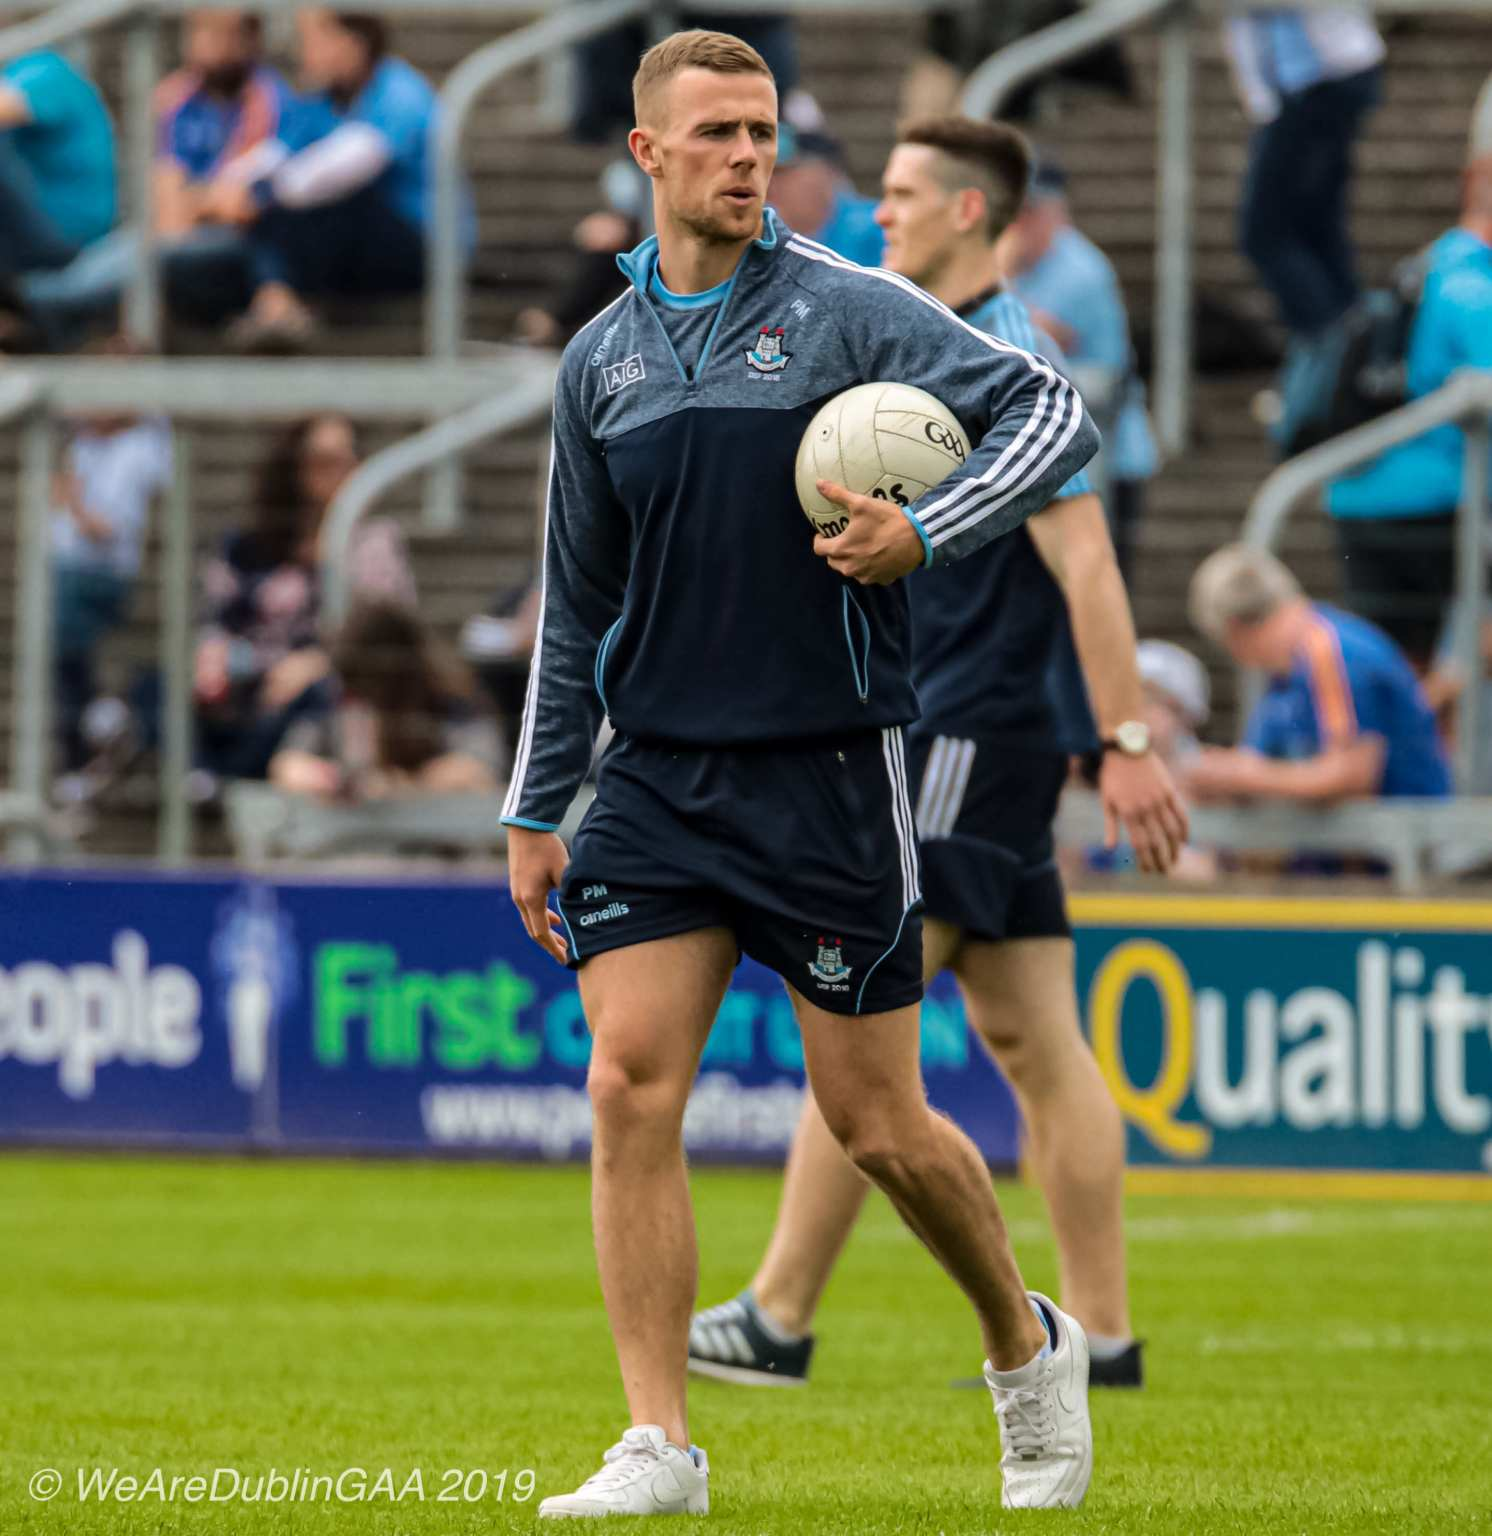 Dublin footballer Paul Mannion who had his proposed one game ban overturned by the CHC last night.